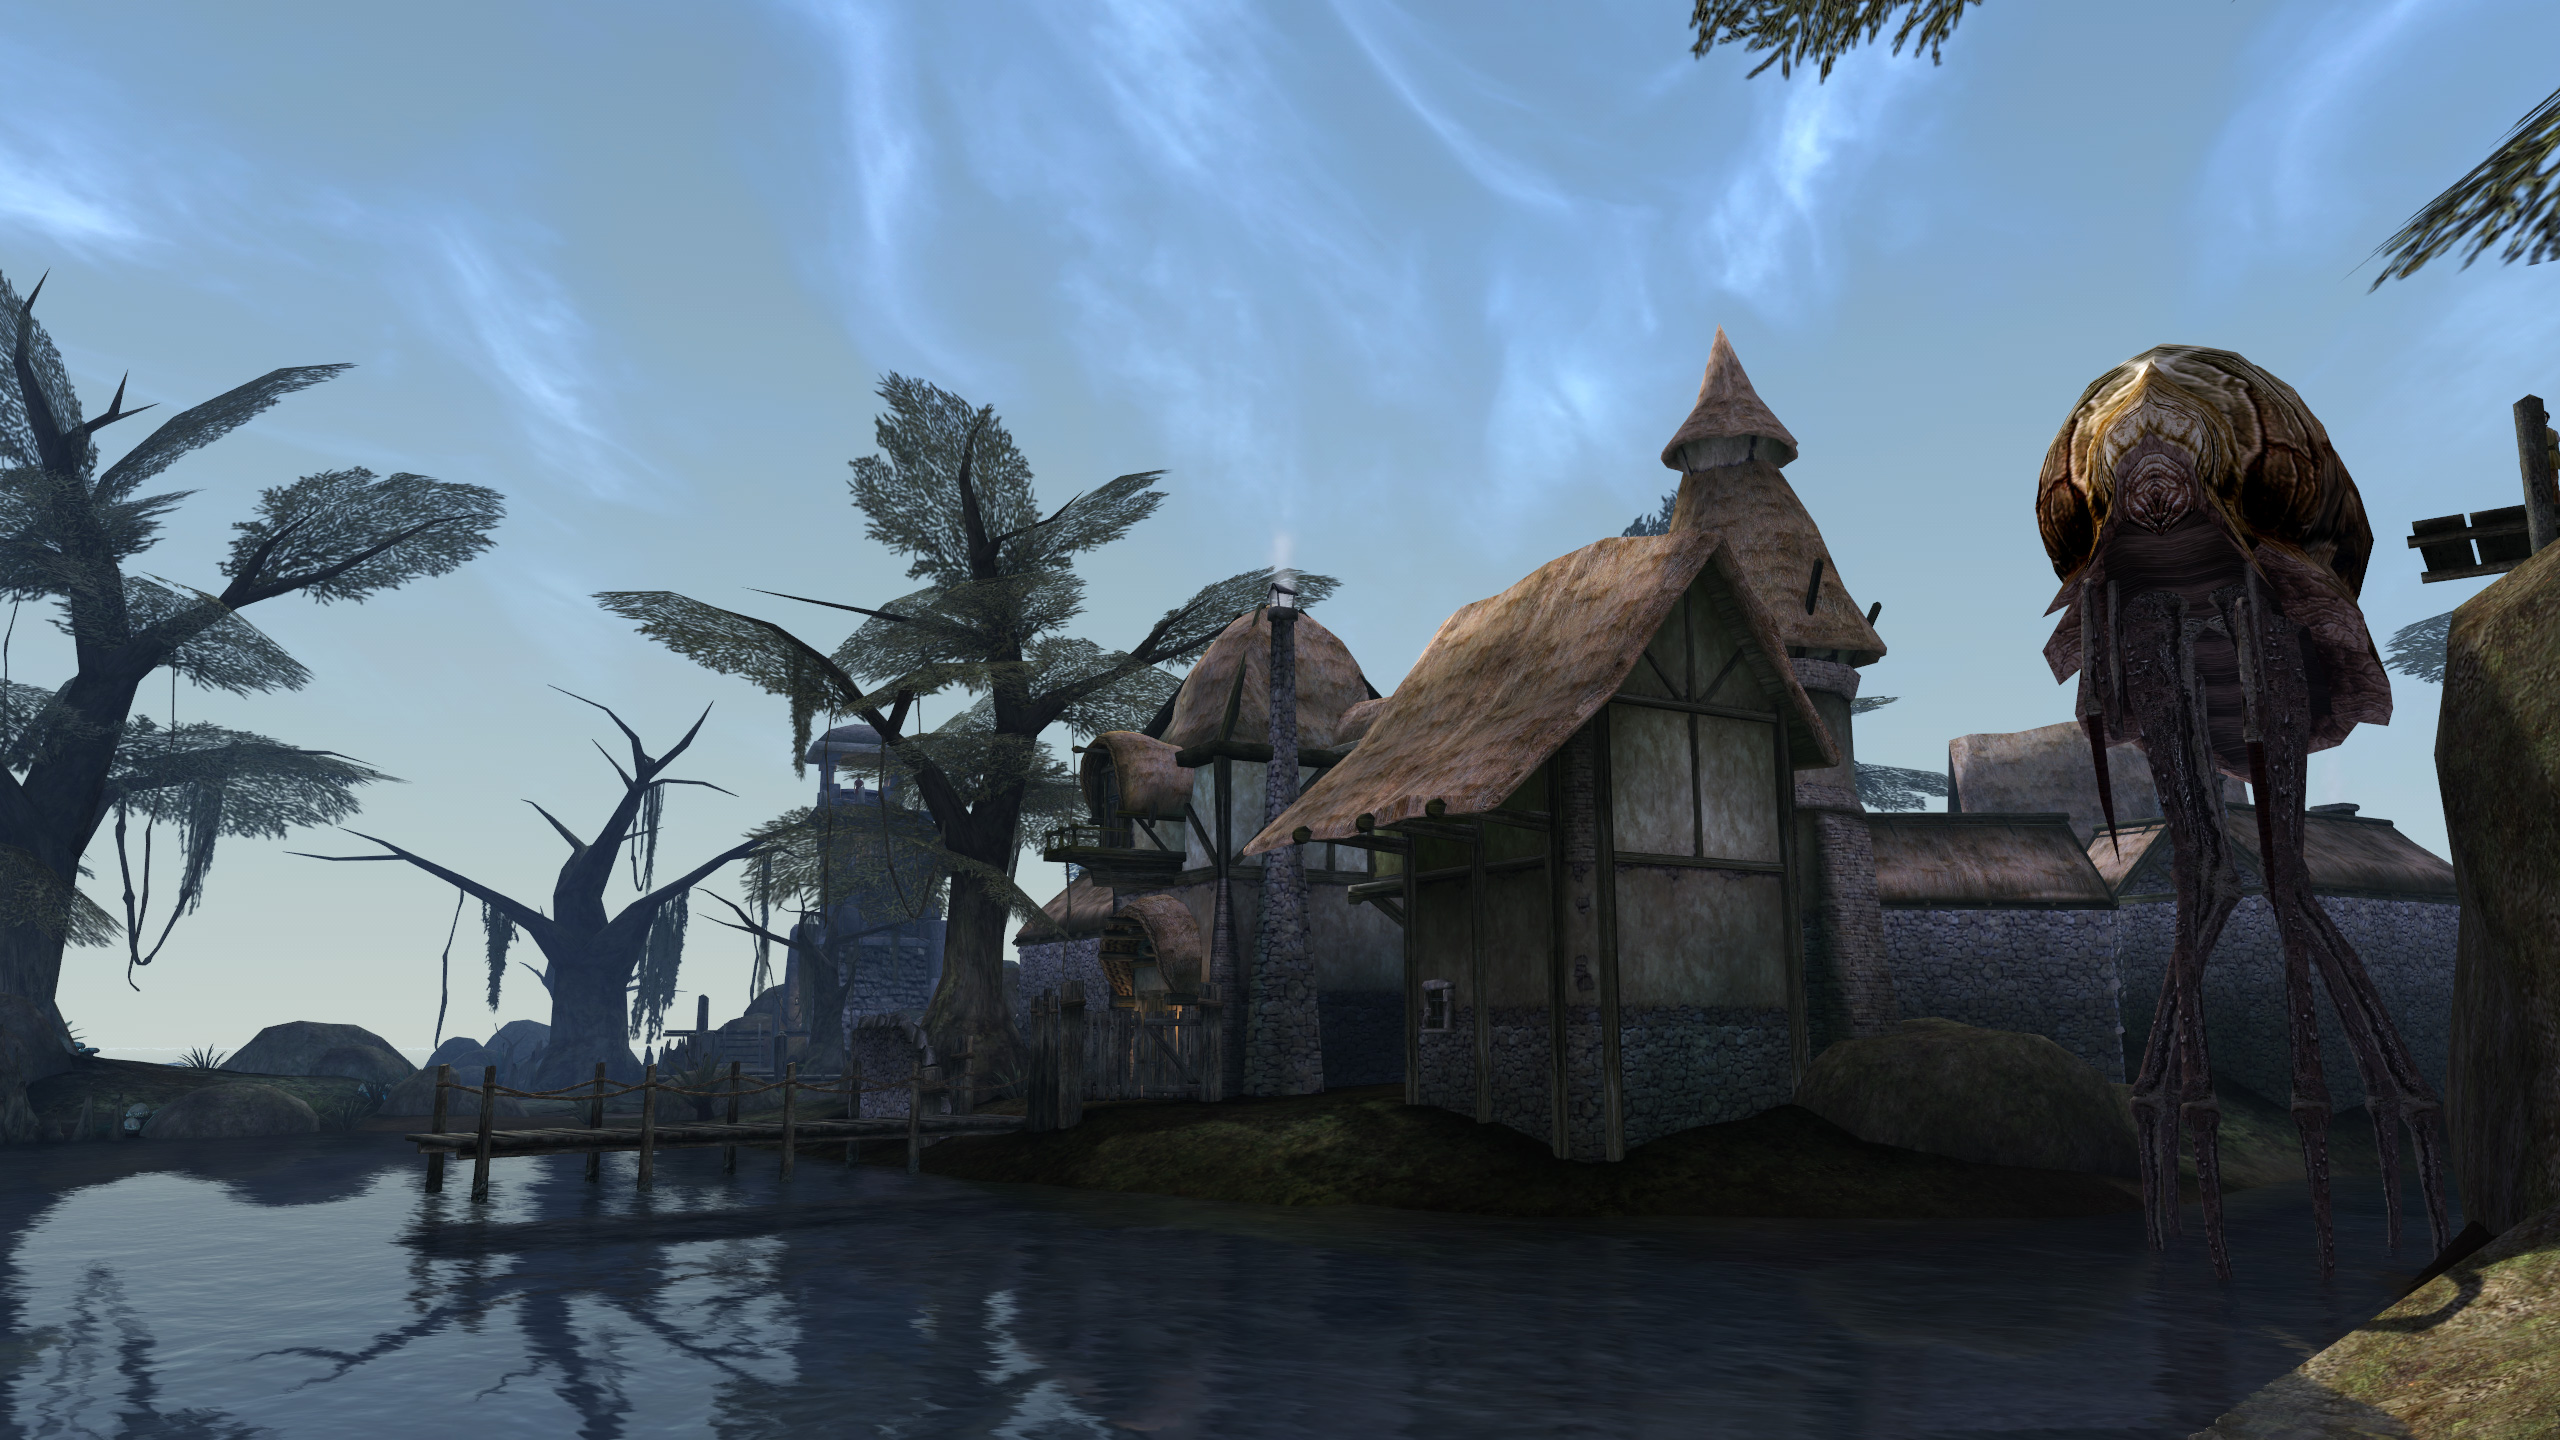 Best Morrowind Graphics Mod 2019 The most essential mods for Morrowind | Rock Paper Shotgun